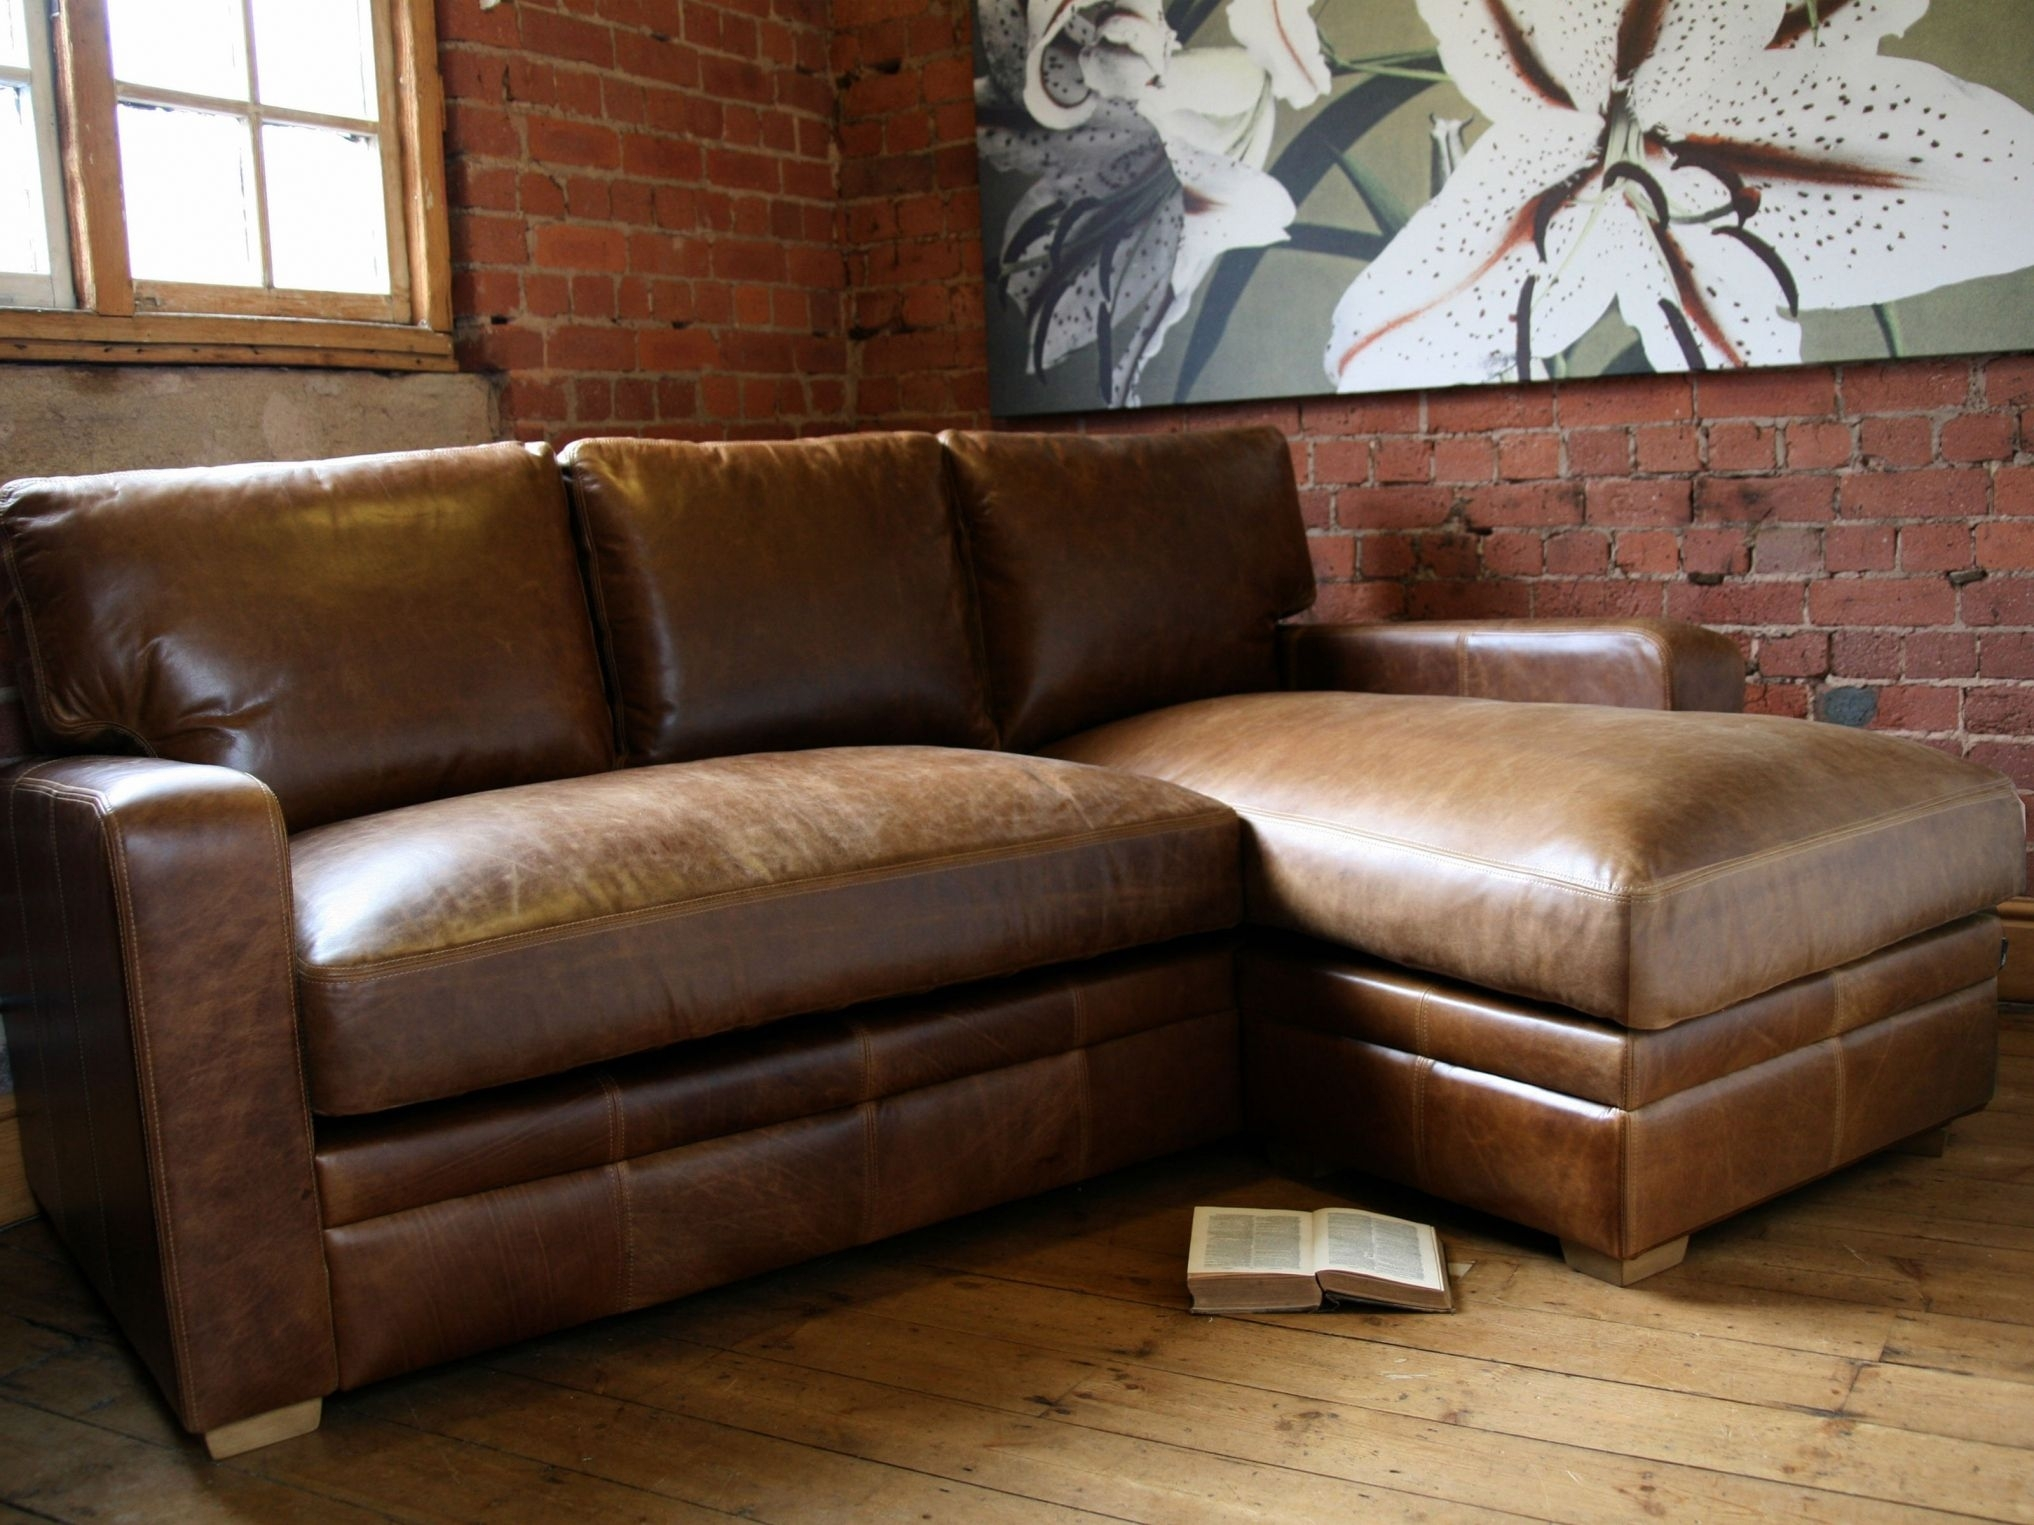 Small Leather Sectional Sofa With Chaise – Interior Paint Colors For With Regard To Apartment Sectional Sofas With Chaise (View 10 of 10)